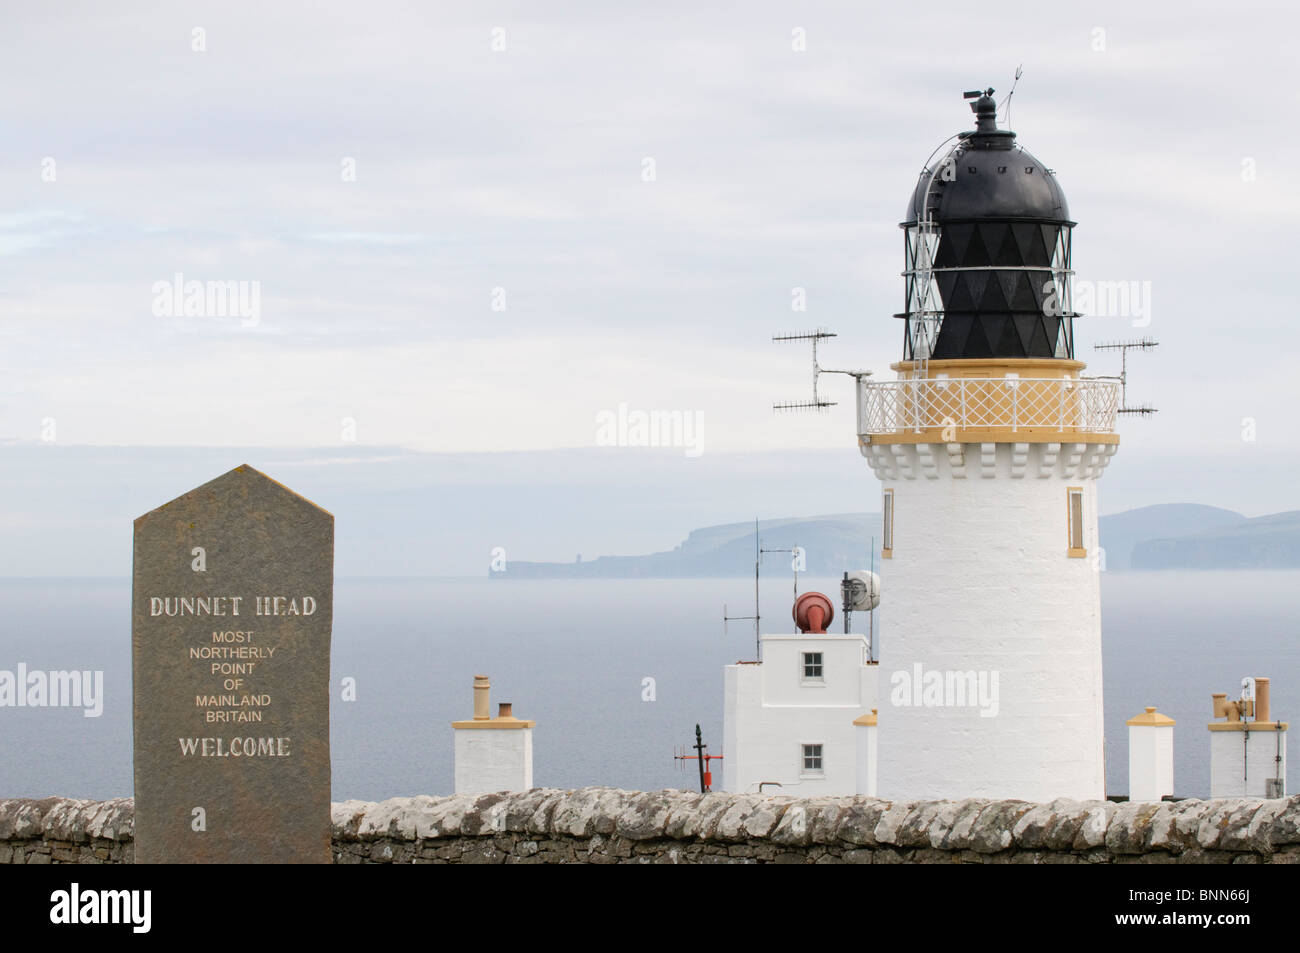 The lighthouse at Dunnet Head, Scotland, with Orkney in the distance. The most northerly place on the British mainland. - Stock Image